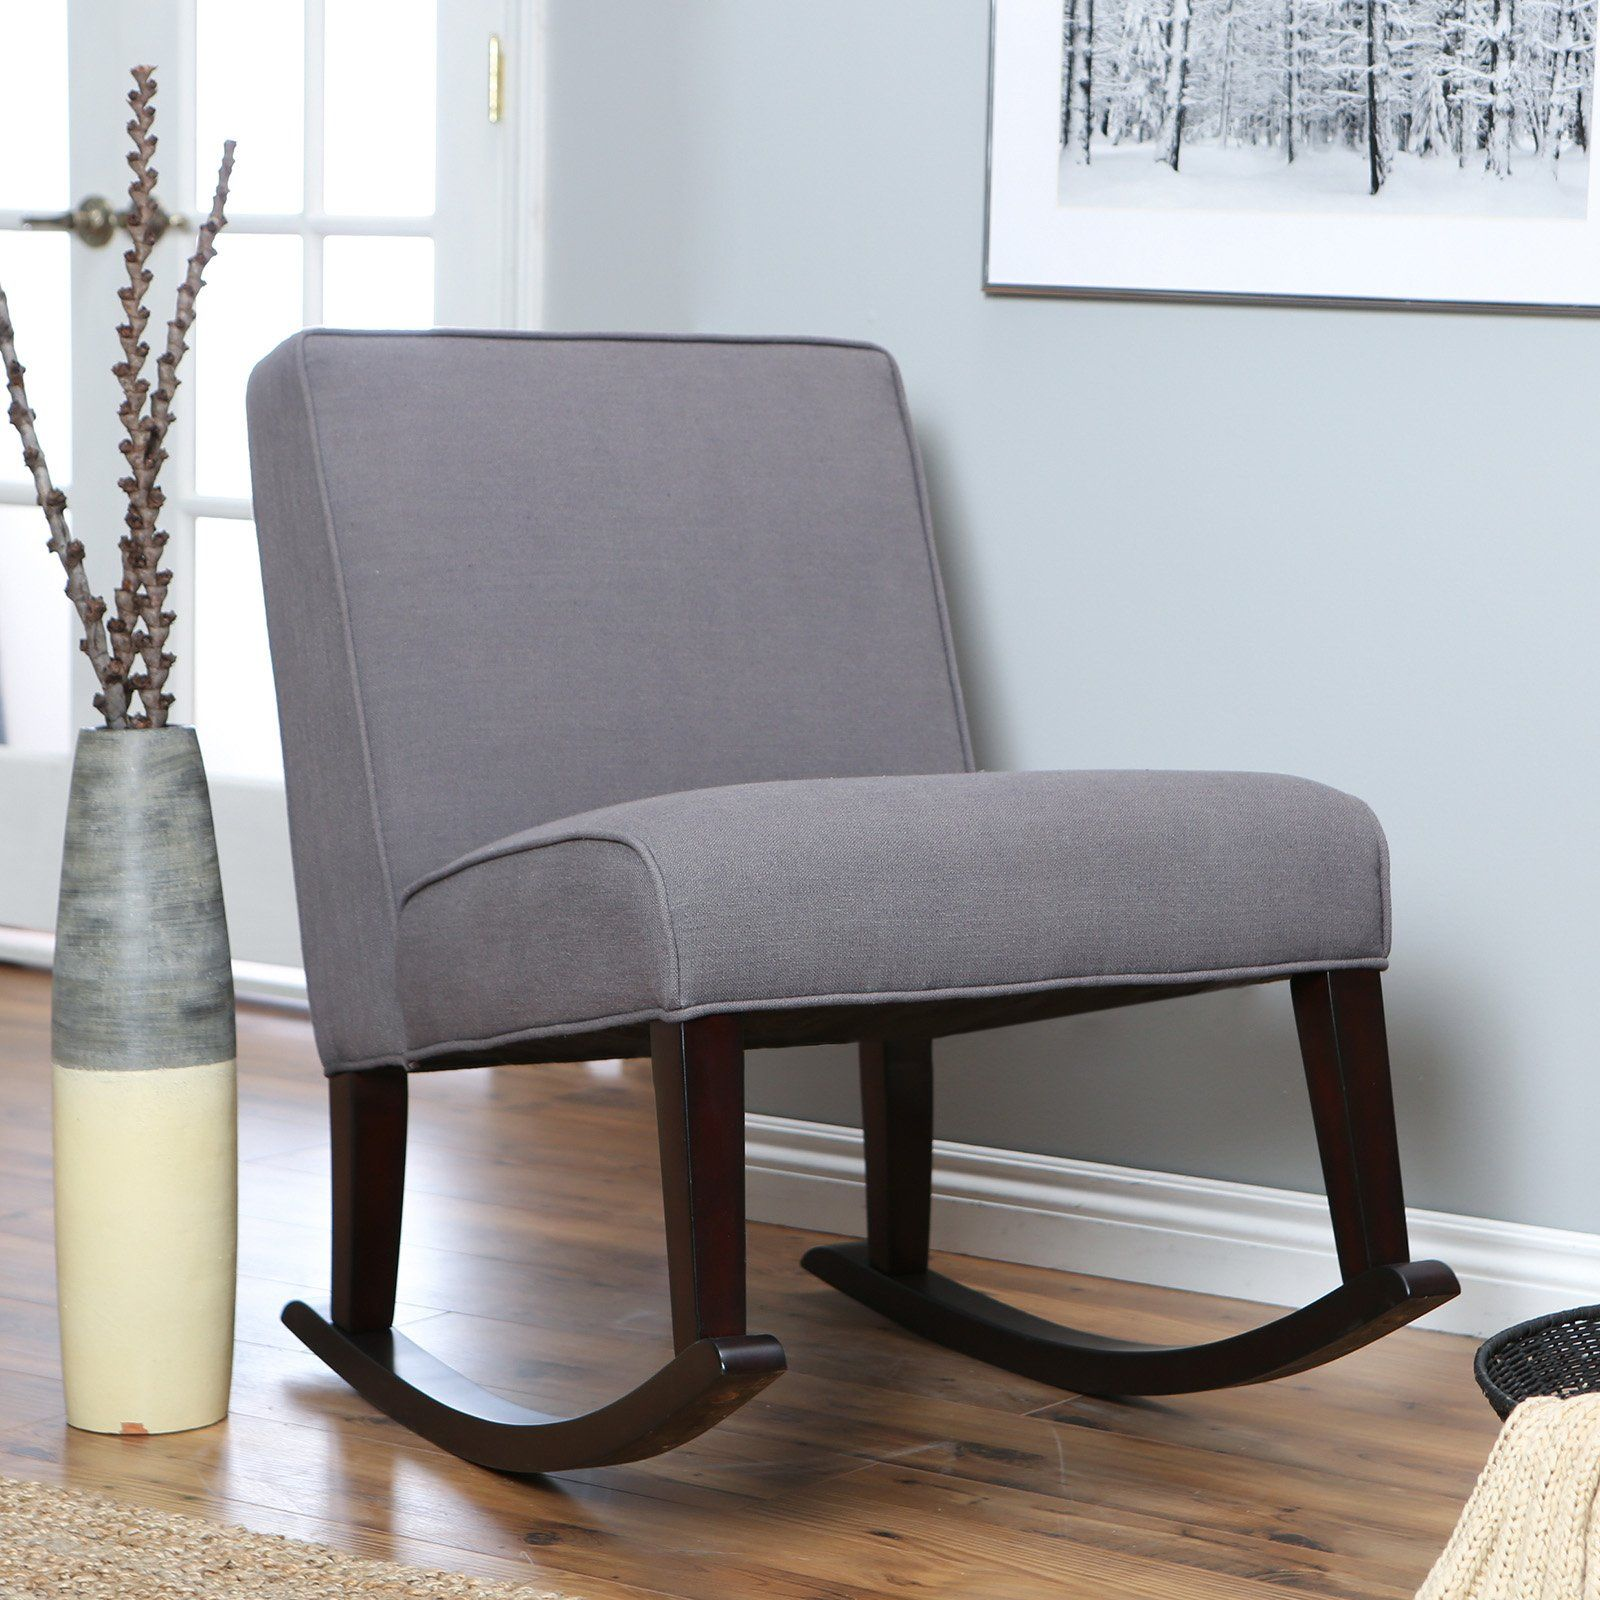 Affordable Furniture Stores Online: Have To Have It. Belham Living Lennox Rocking Chair